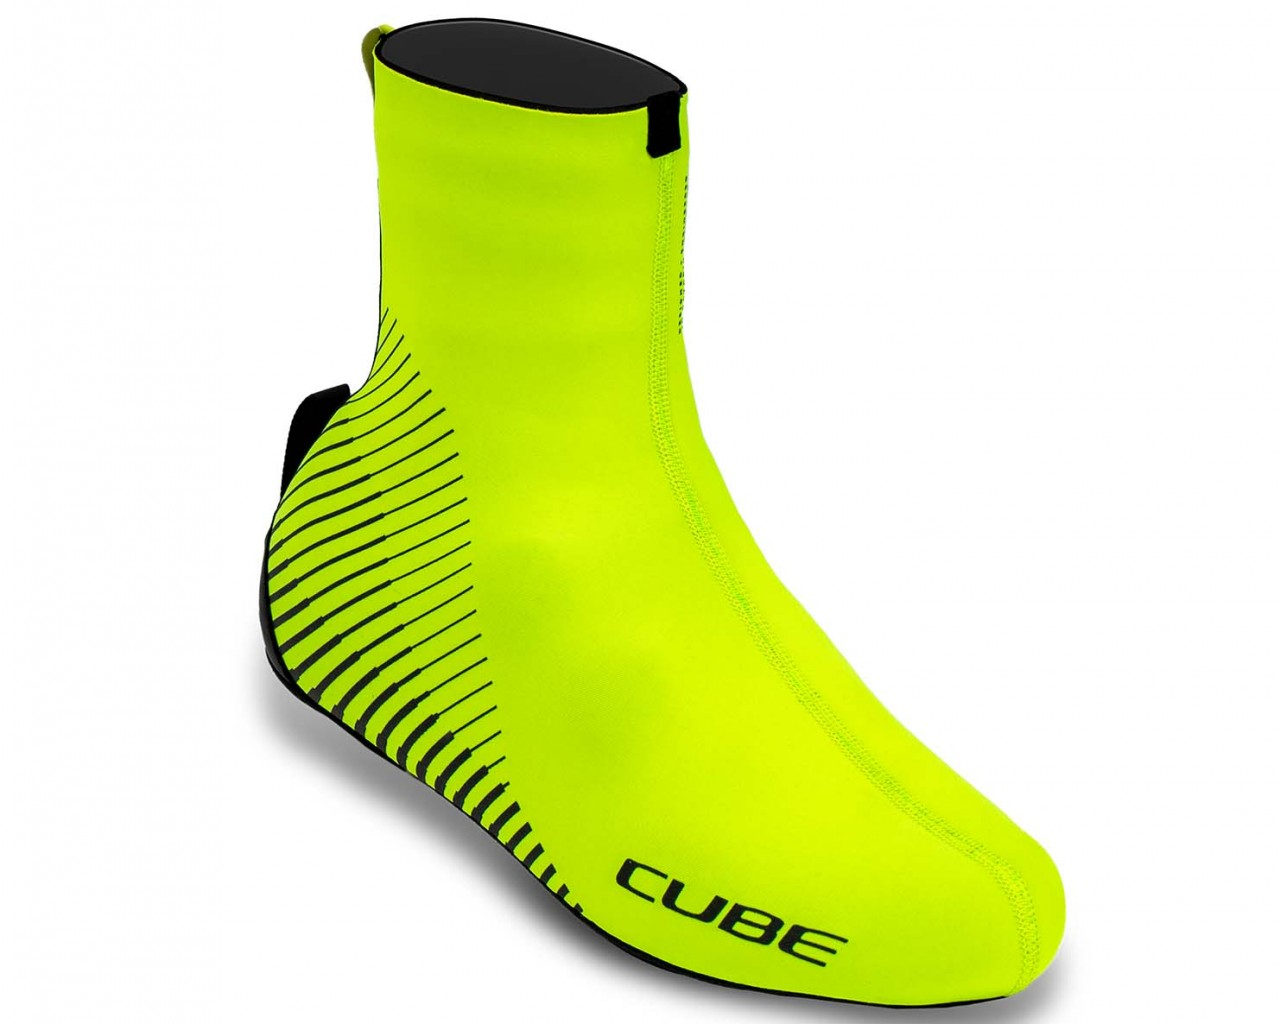 Cube Shoe Cover Neoprene Safety | yellow